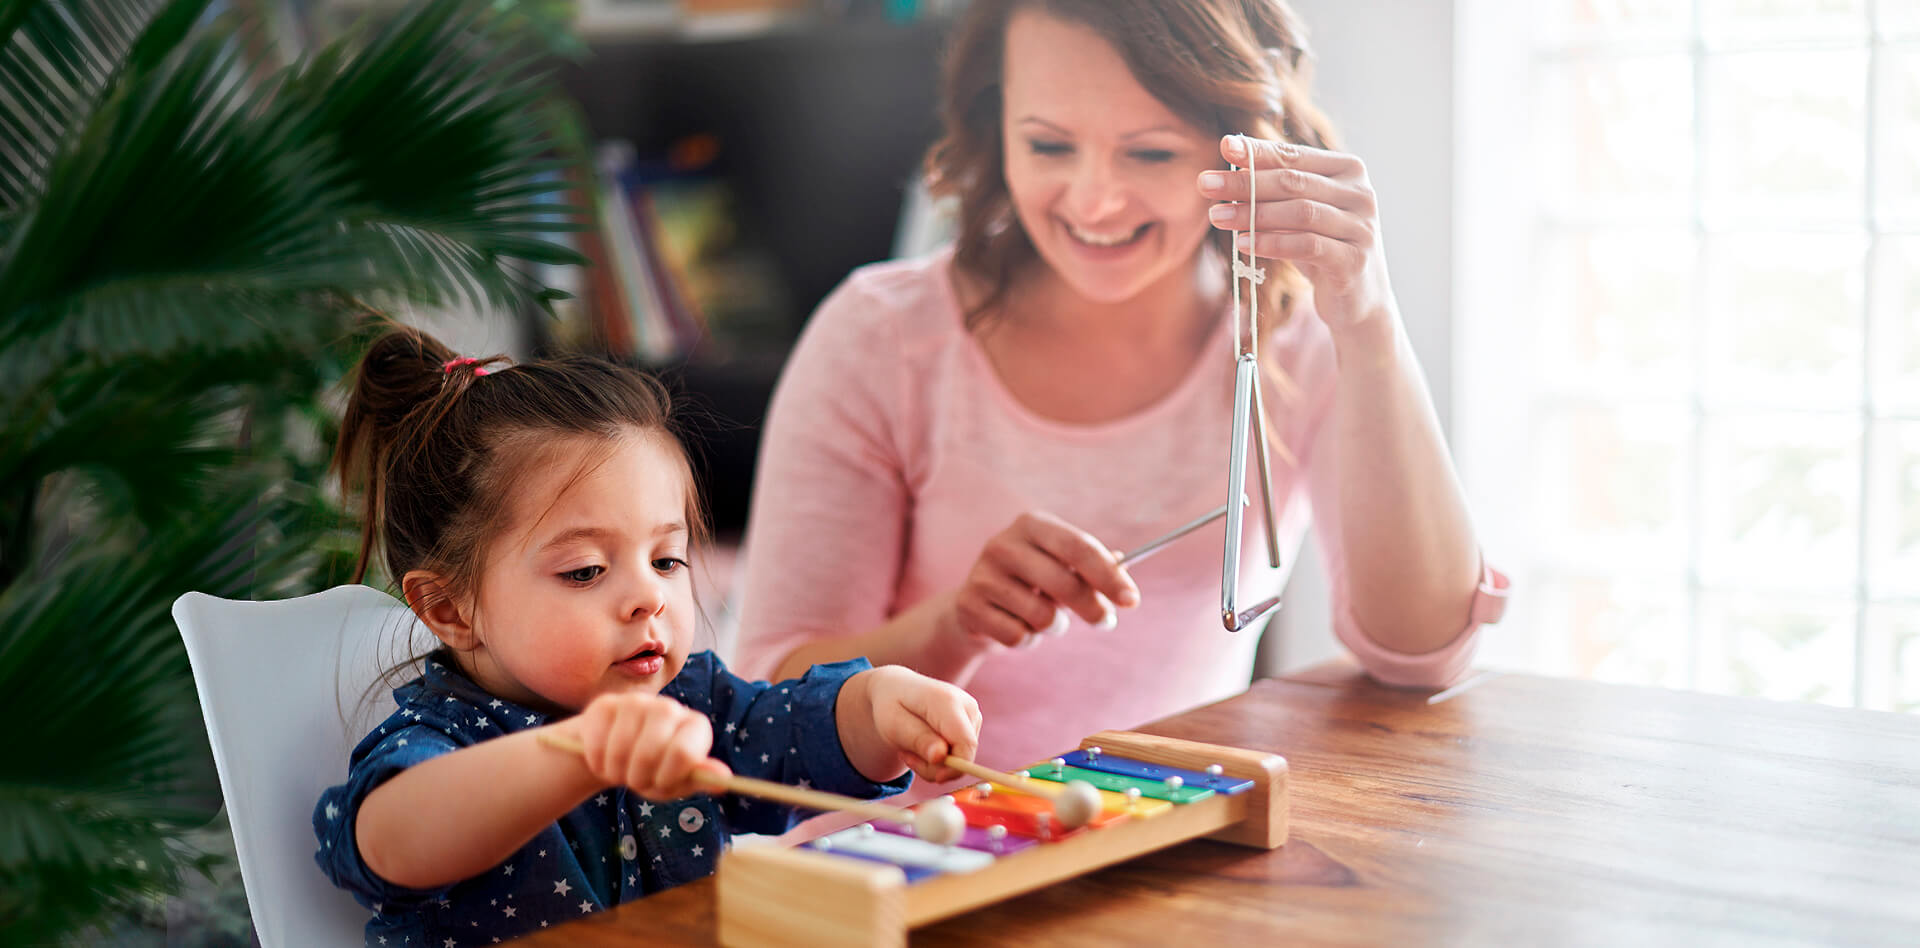 Early Music Development Lessons at Montessori Center